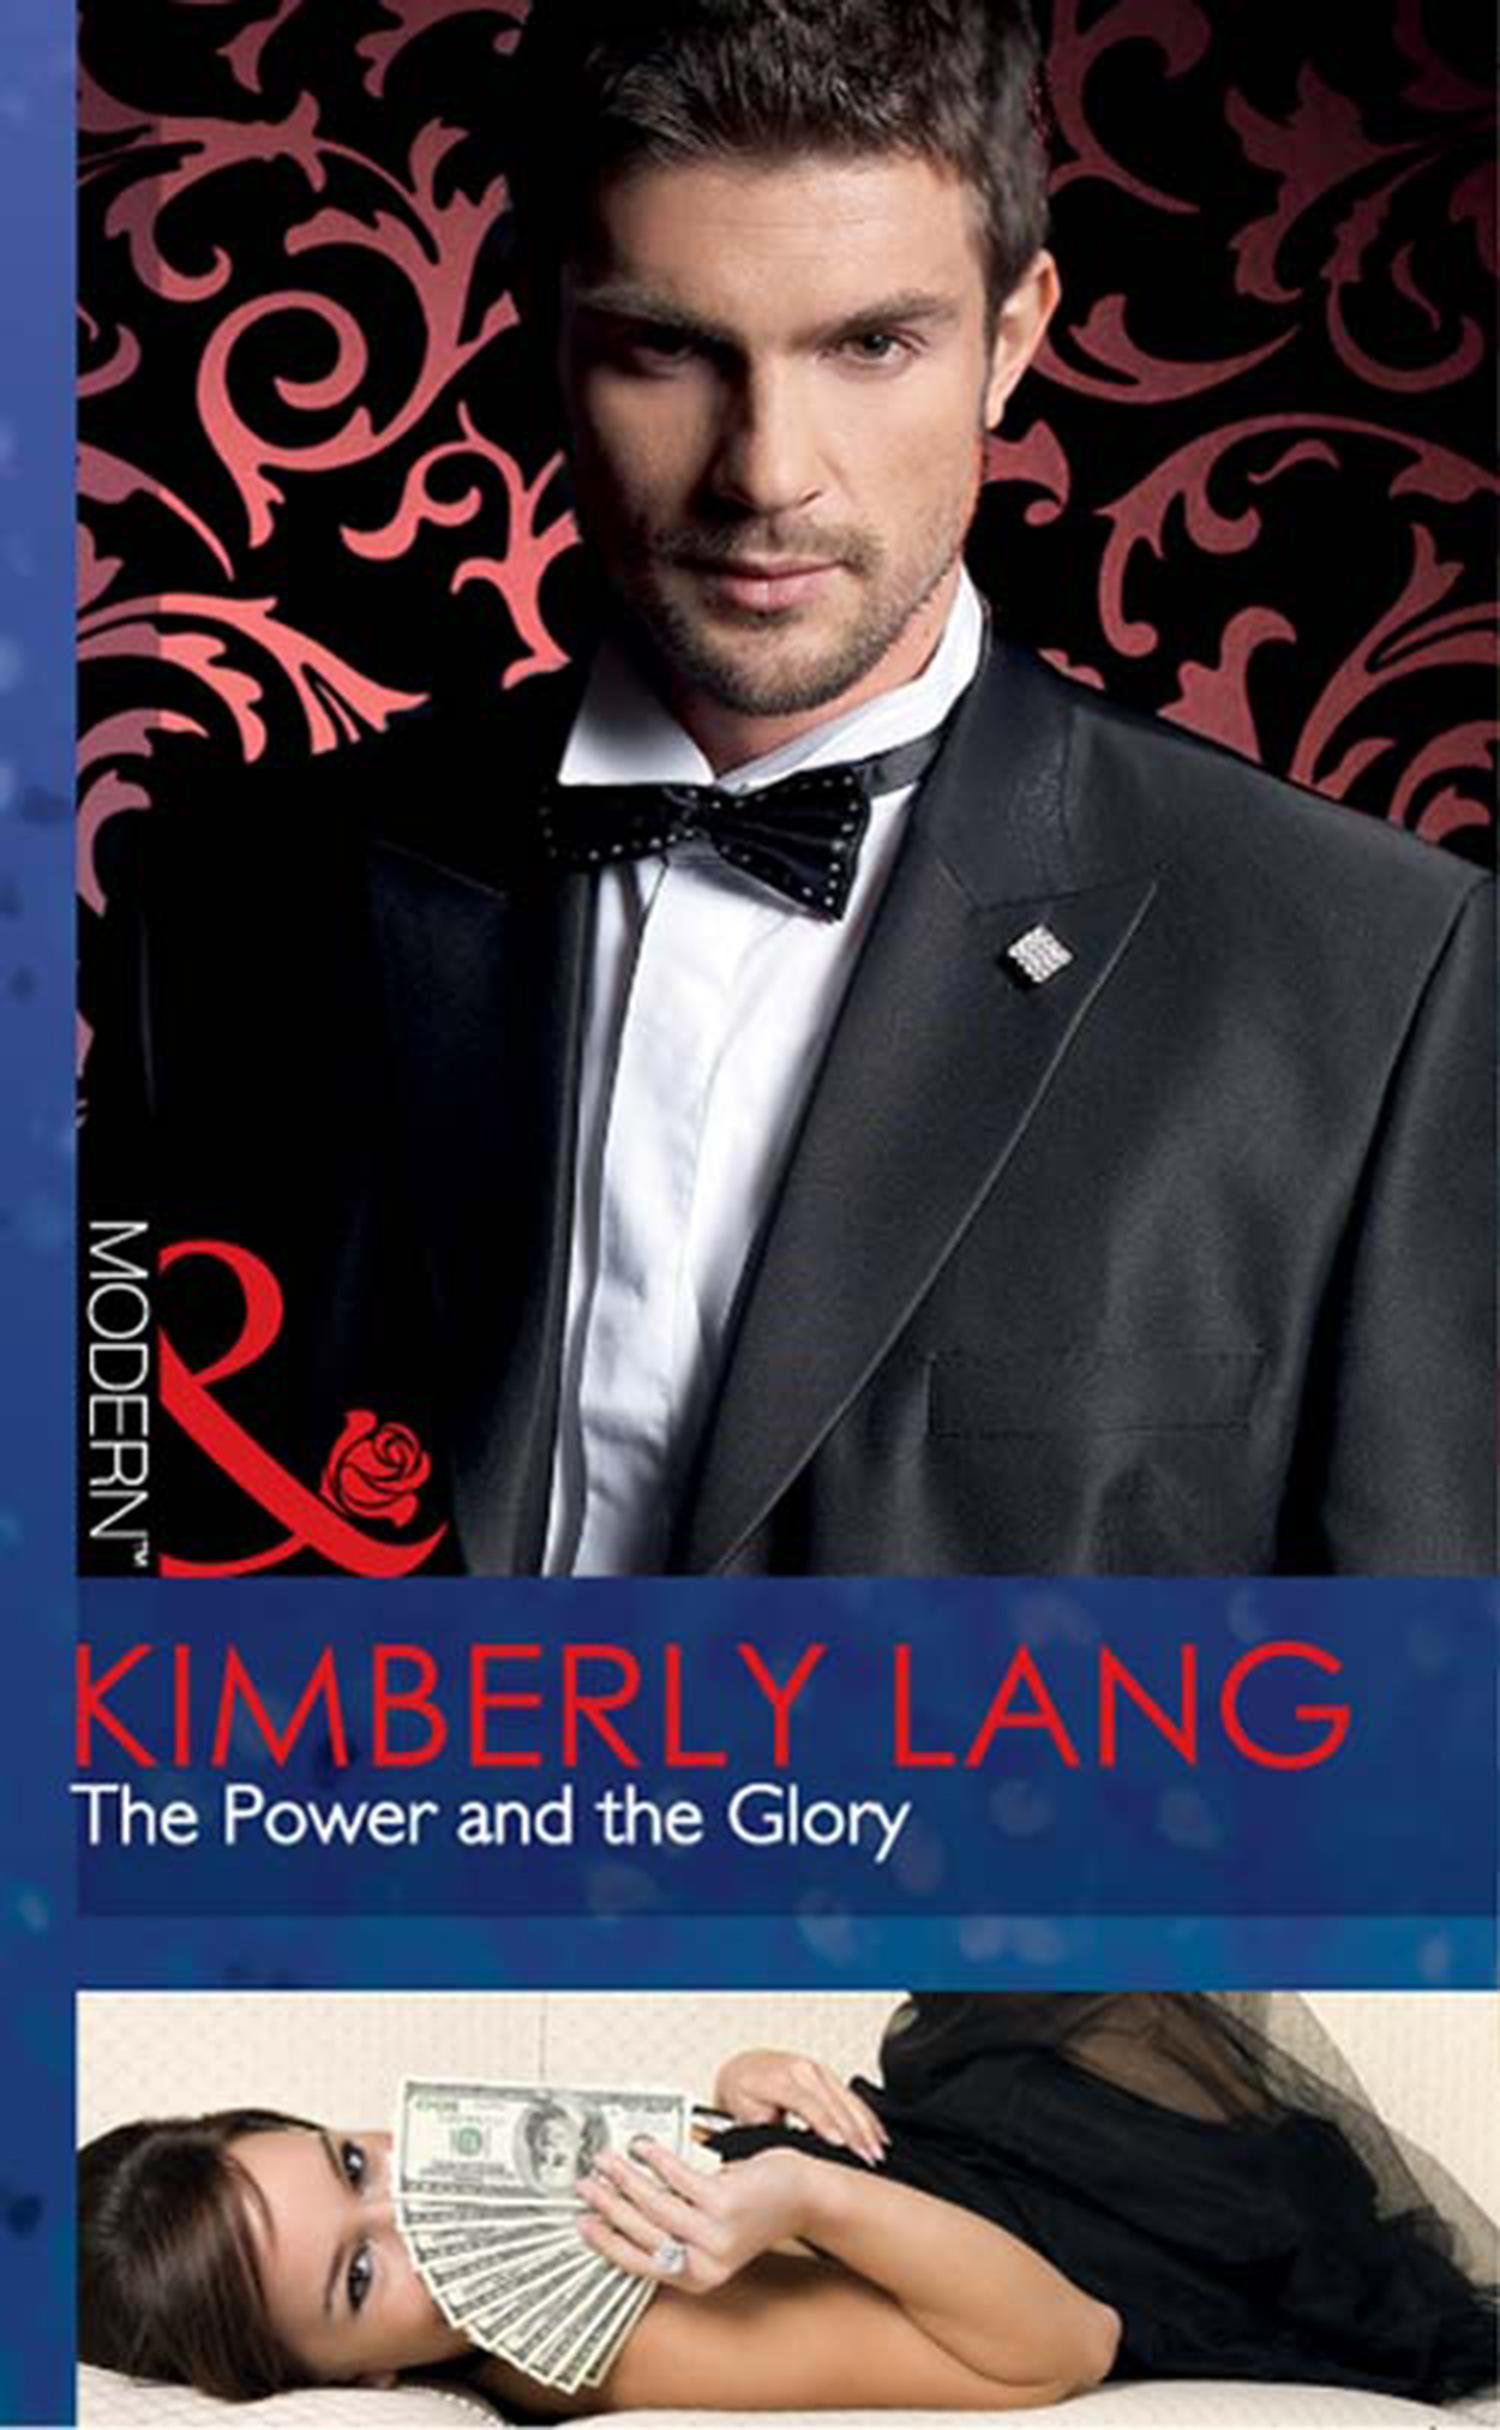 The Power and the Glory by Kimberly Lang, ISBN: 9781408920107